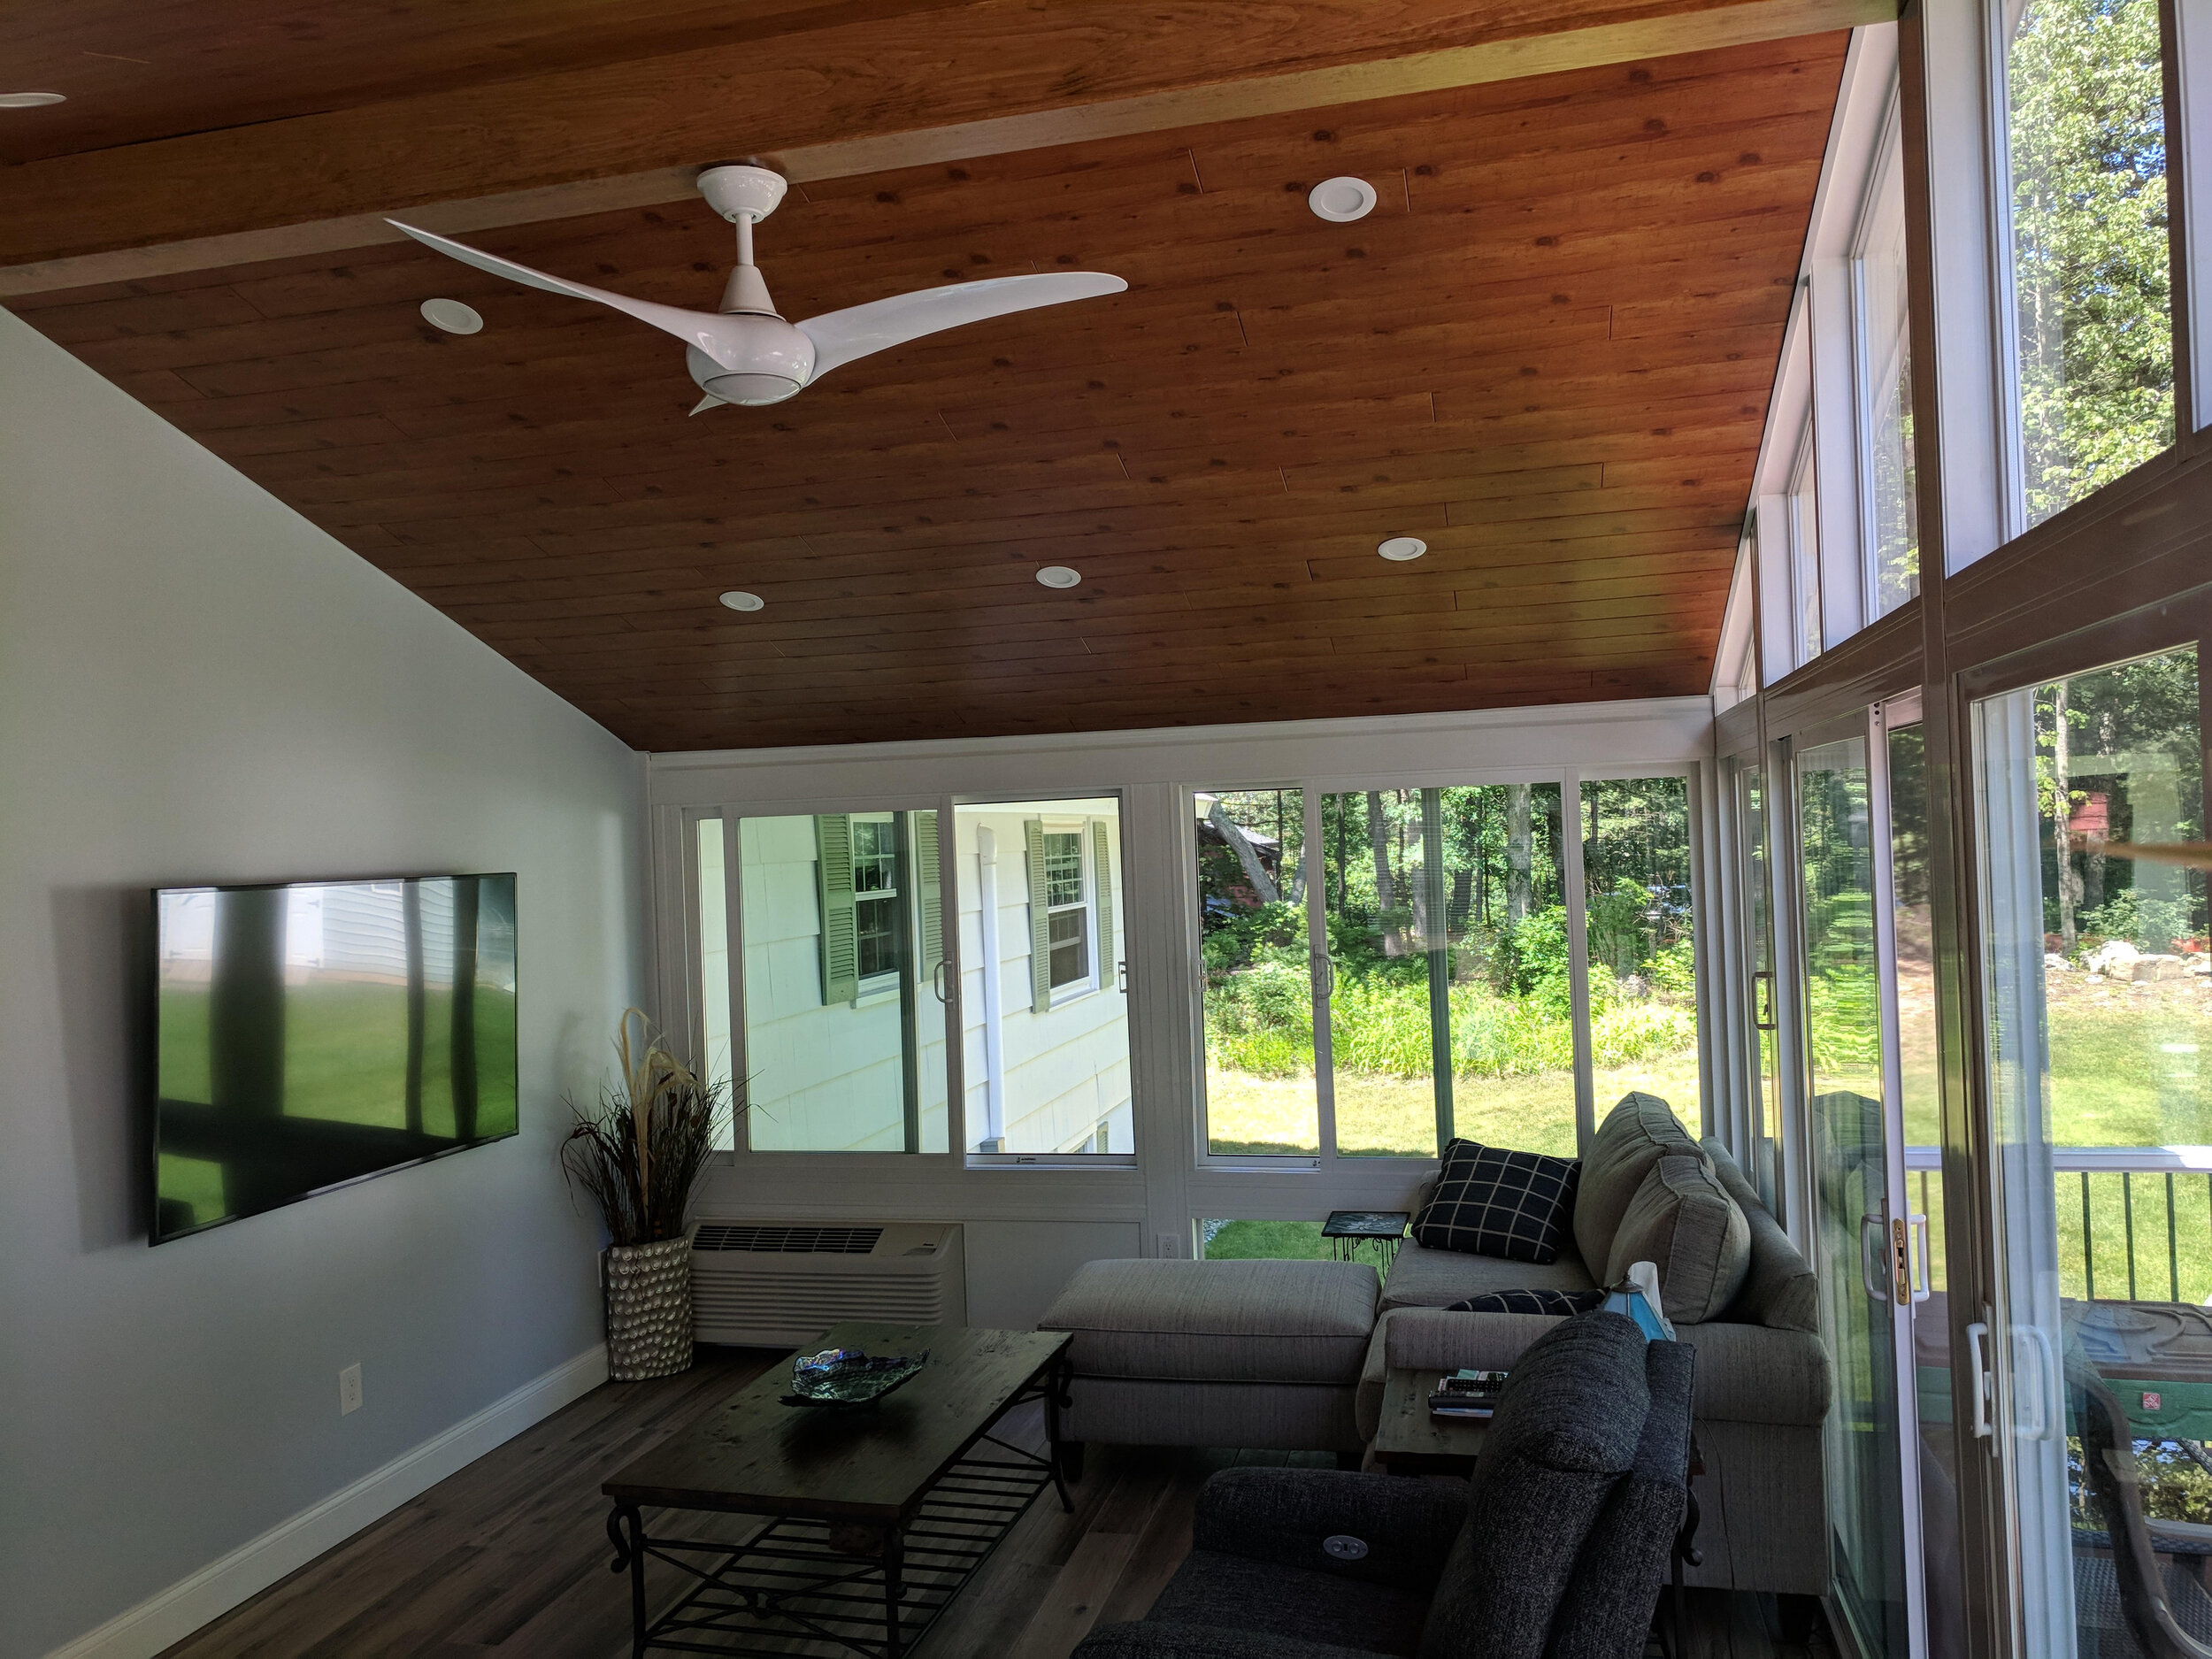 5 Ways to Customize Your Betterliving Sunroom